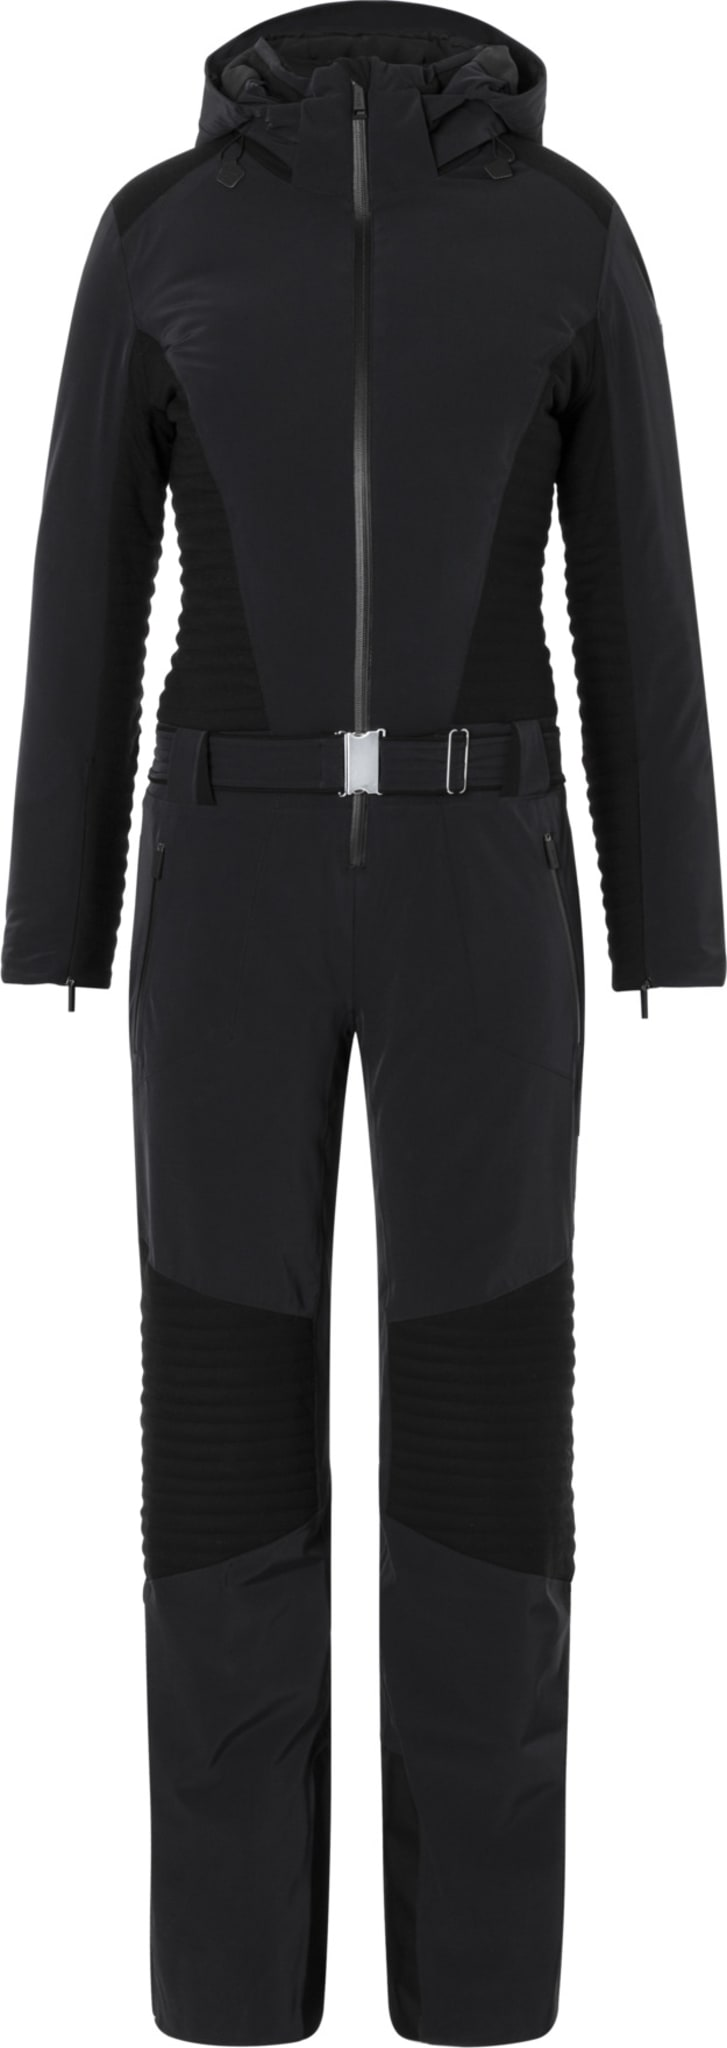 Sella One-Piece Suit Woman